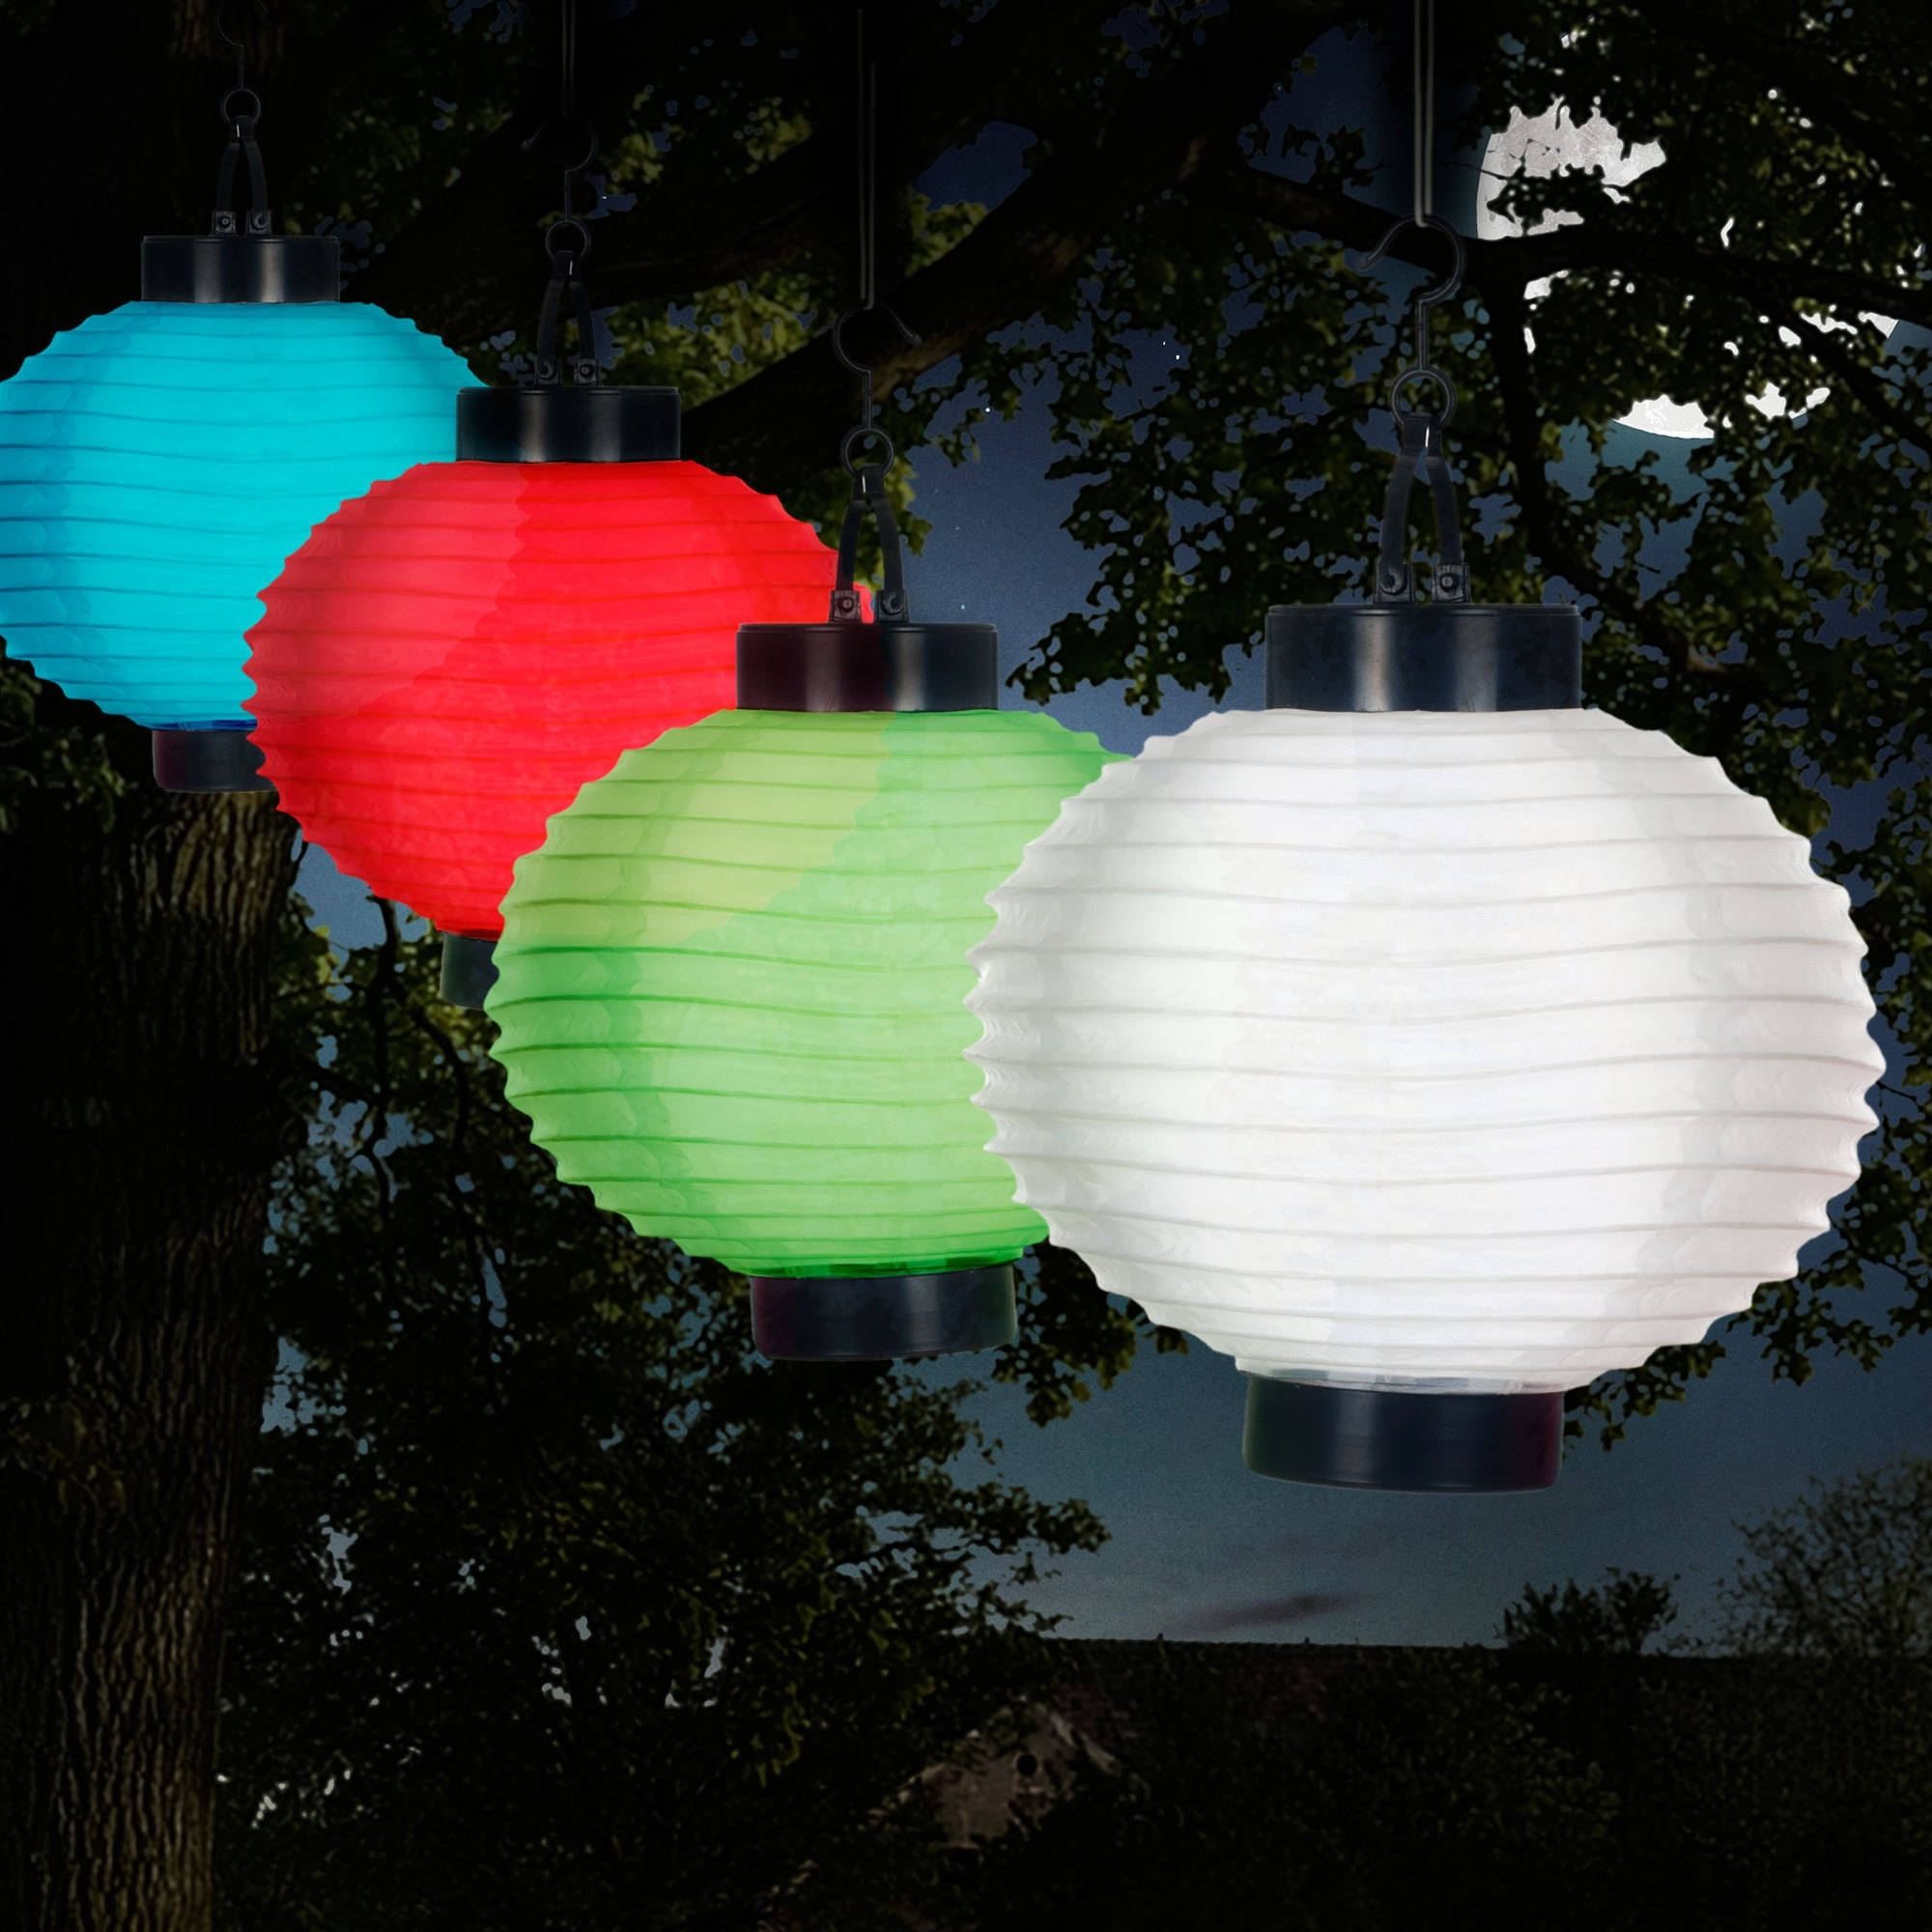 Outdoor Hanging Chinese Lanterns Regarding Most Current Pure Garden Outdoor Solar Chinese Lanterns, Led, Set Of 4 – Walmart (View 12 of 20)